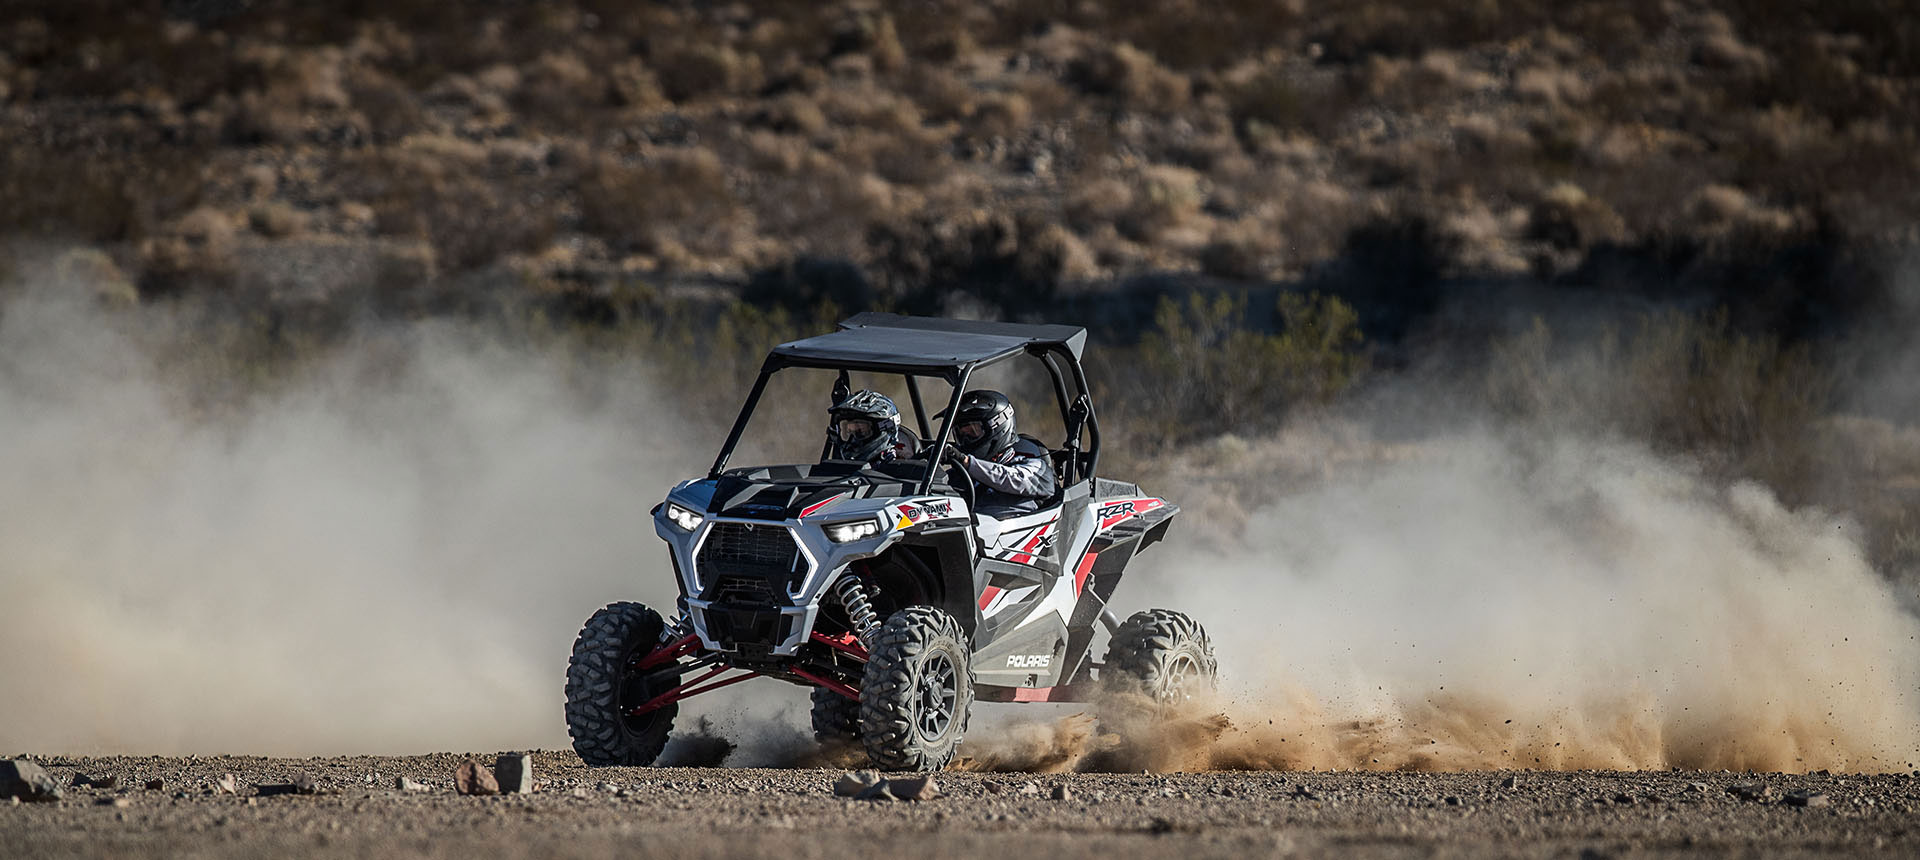 2019 Polaris RZR XP 1000 in Marietta, Ohio - Photo 7